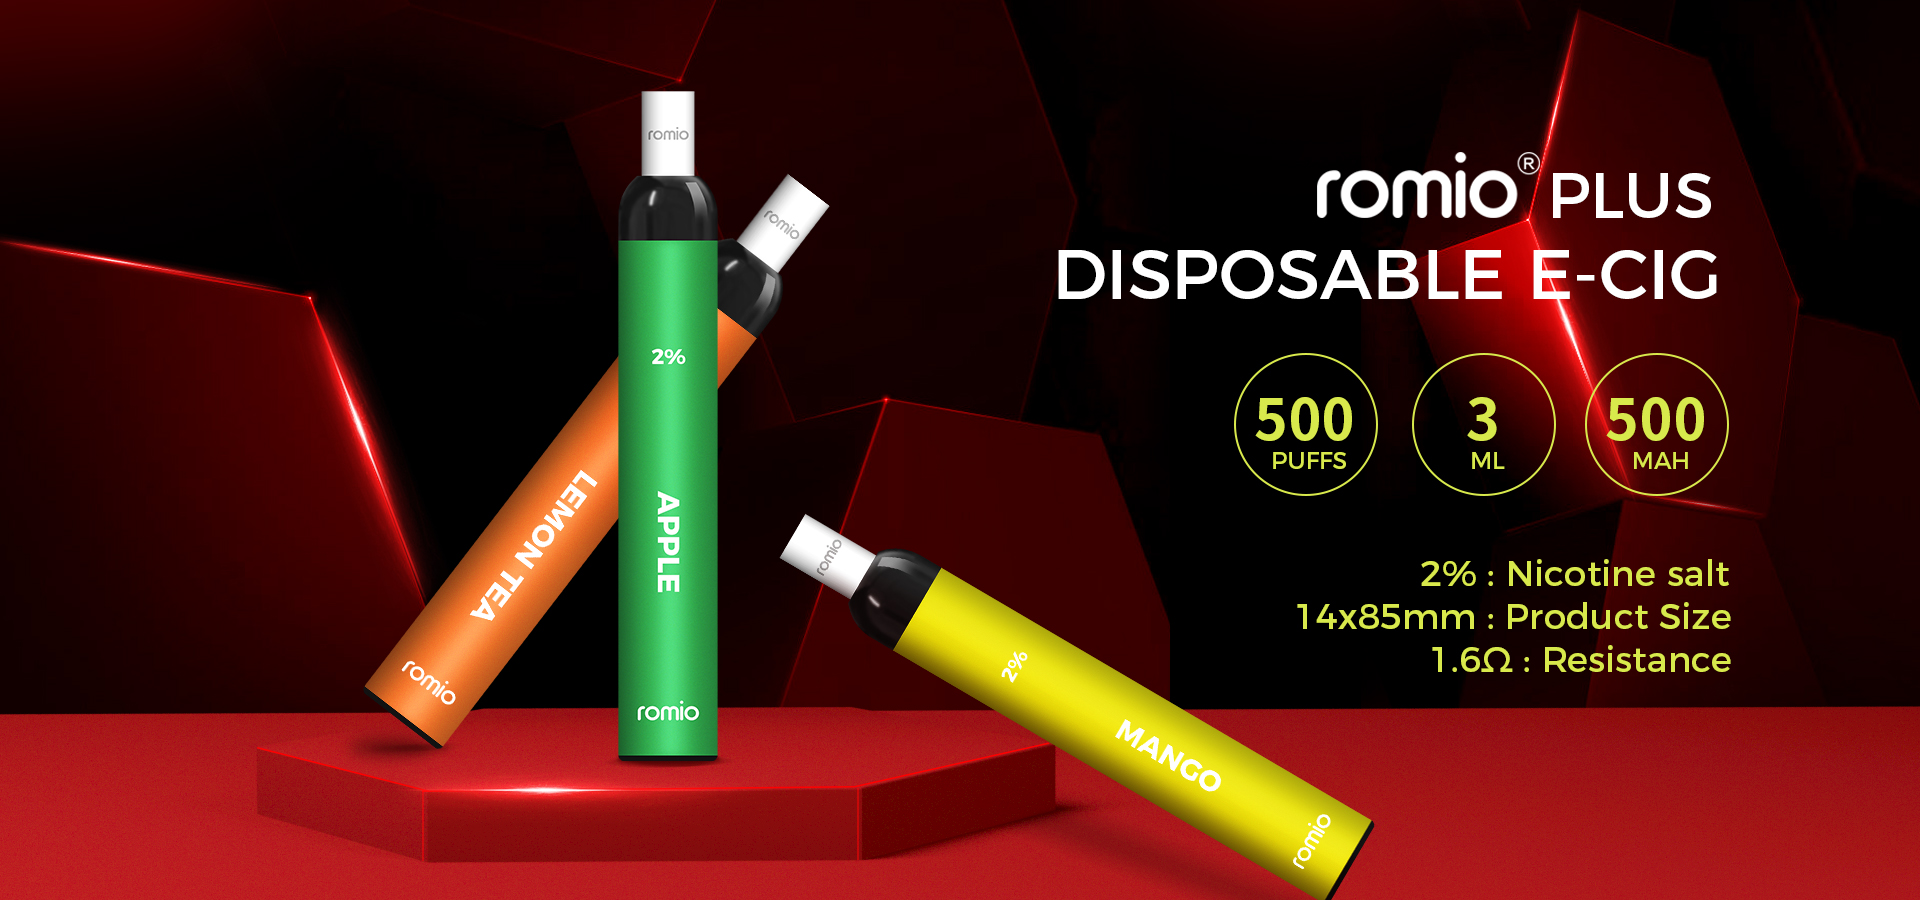 Romio Plus Disposable E-cig with 500mAh Battery 500 more puffs - ESM SMOKE